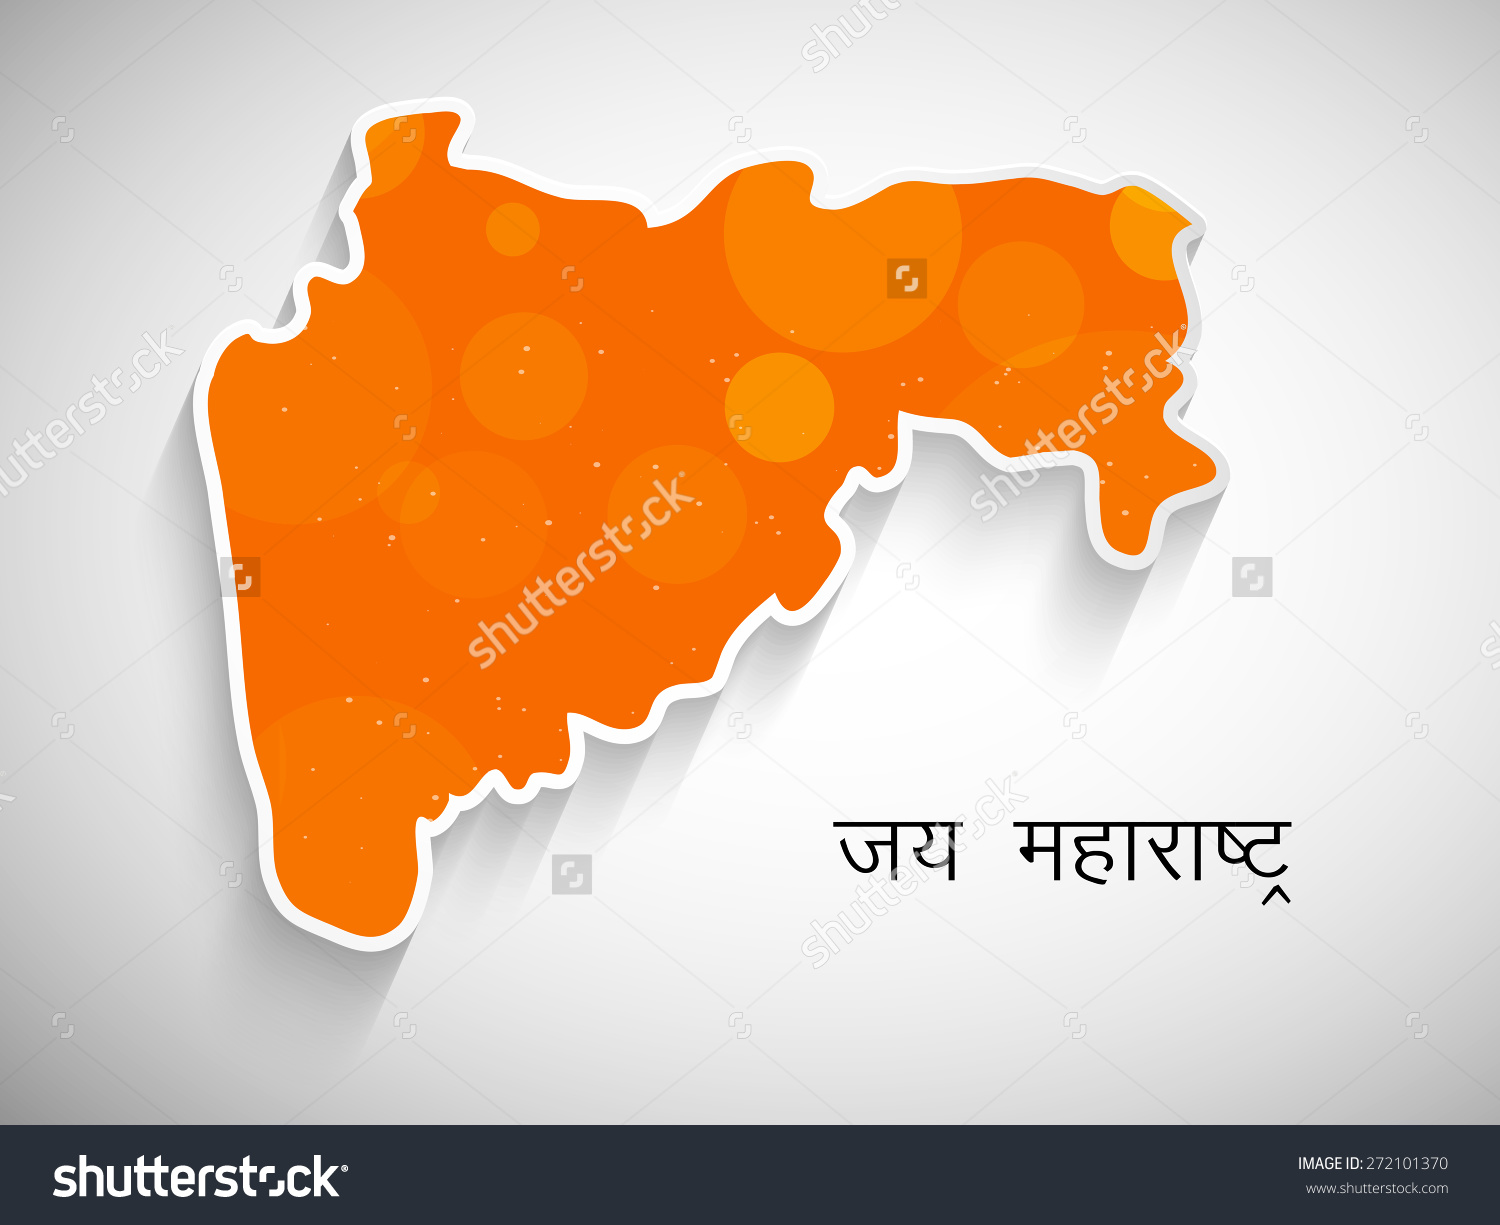 Maharashtra Day State Holiday Indian State Stock Vector 272101370.